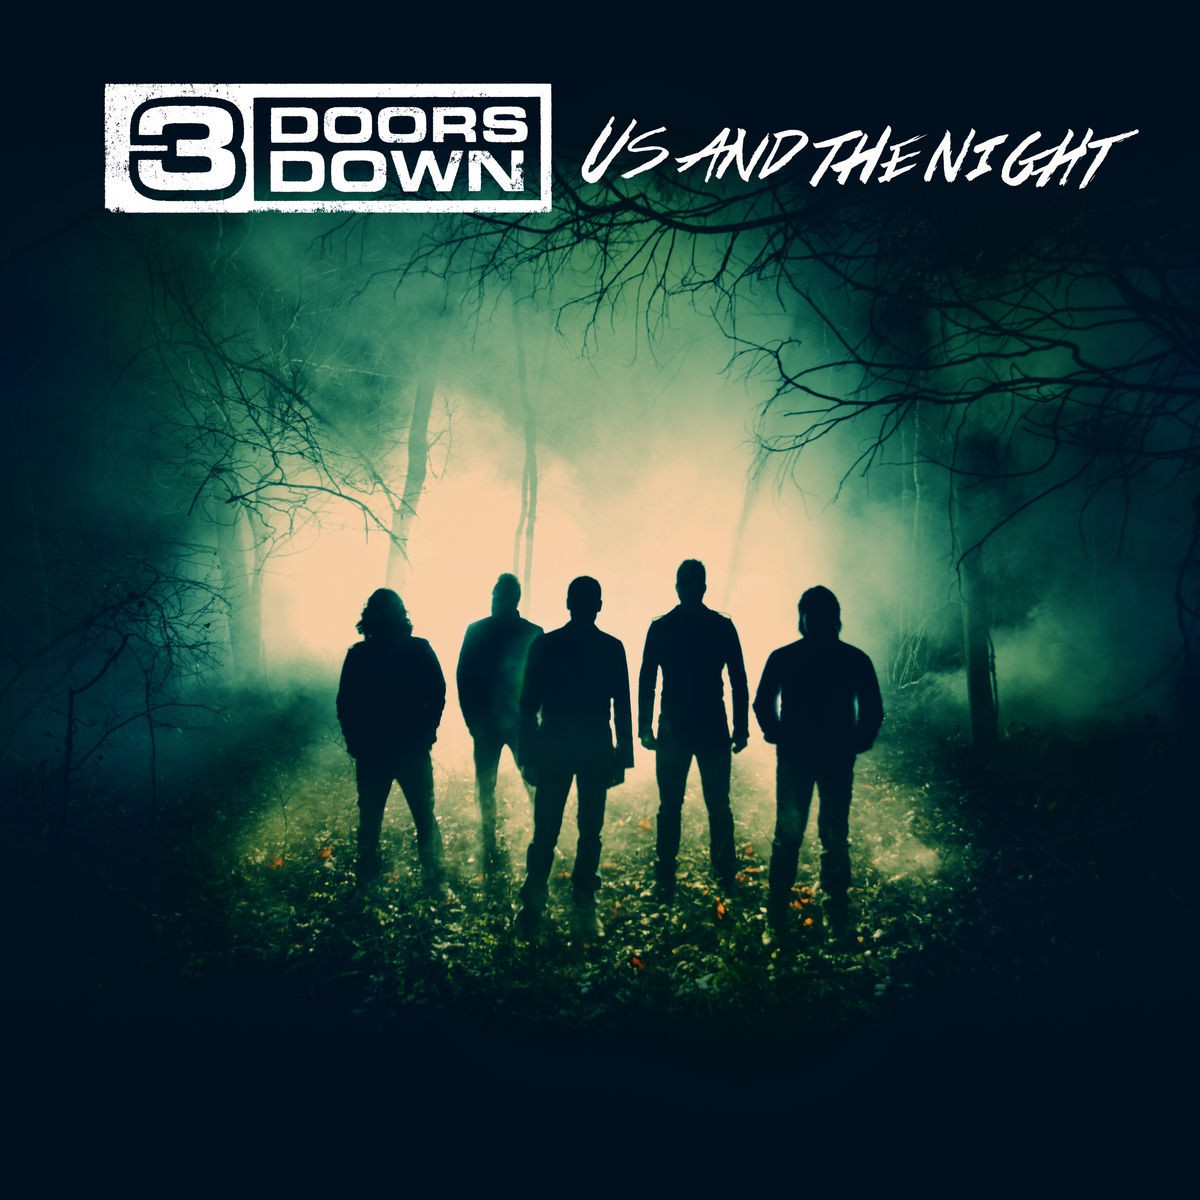 3 Doors Down - Us And The Night CD - 06025 4776643